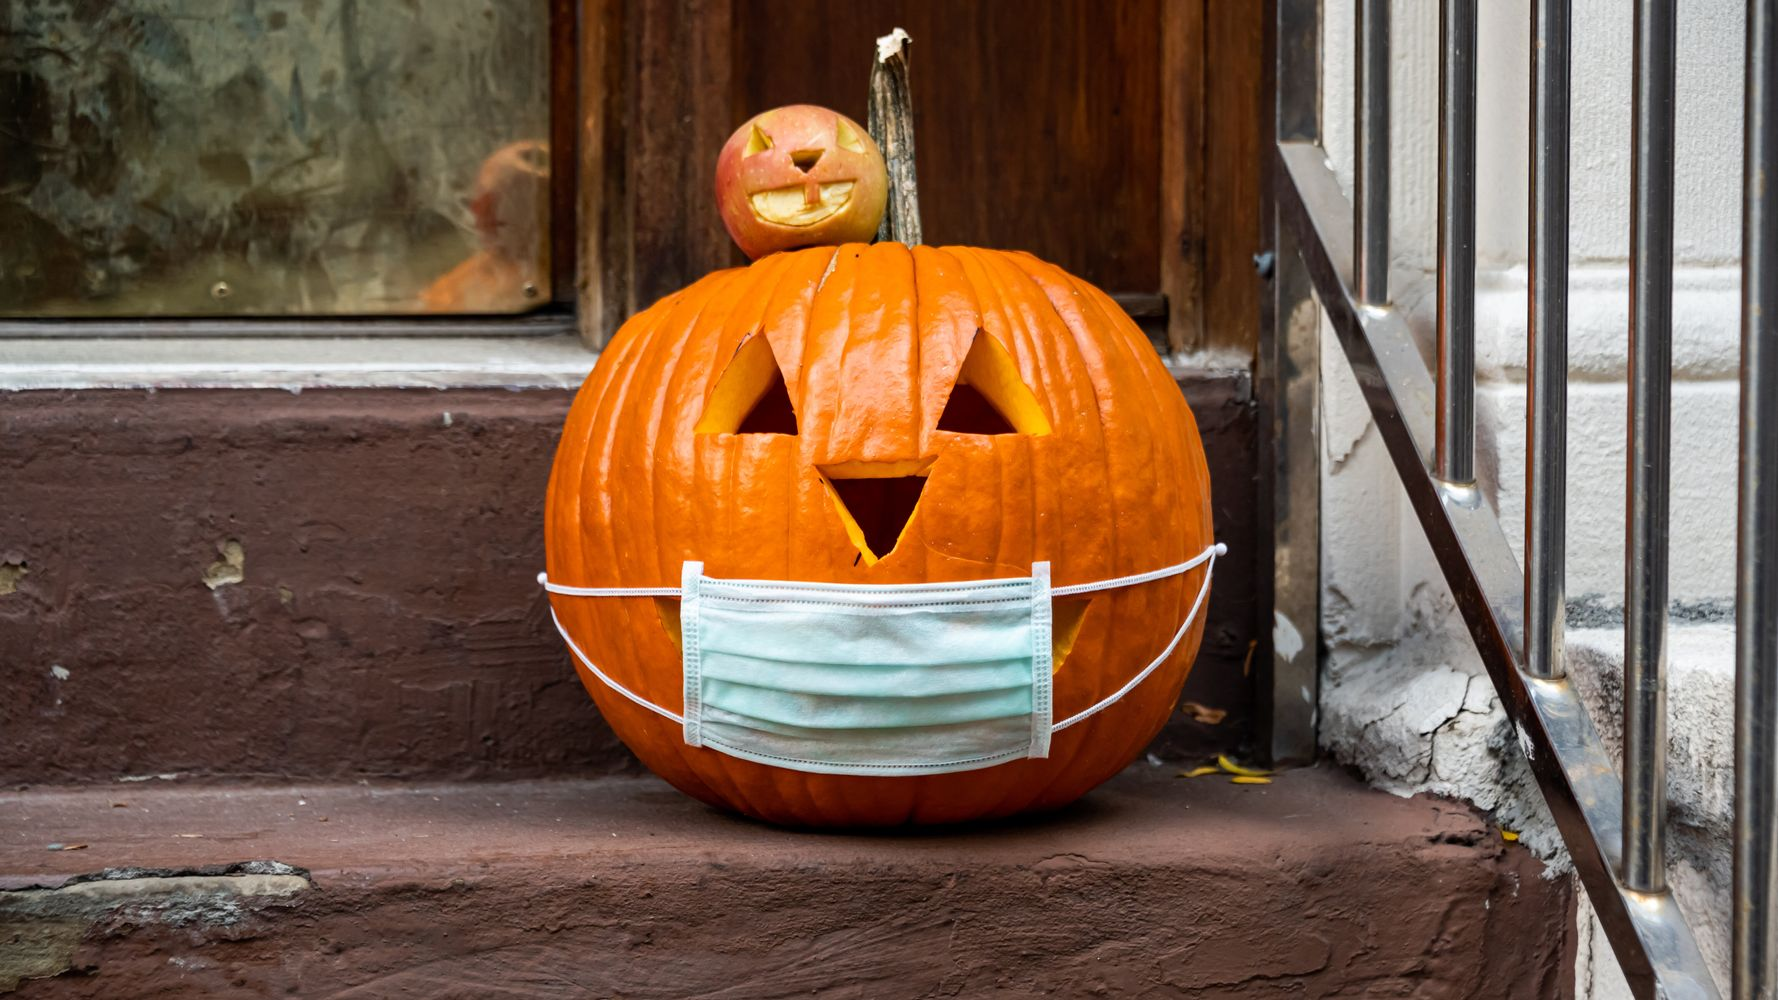 'Enjoy Halloween:' Dr. Anthony Fauci Okays Trick-Or-Treating This Year